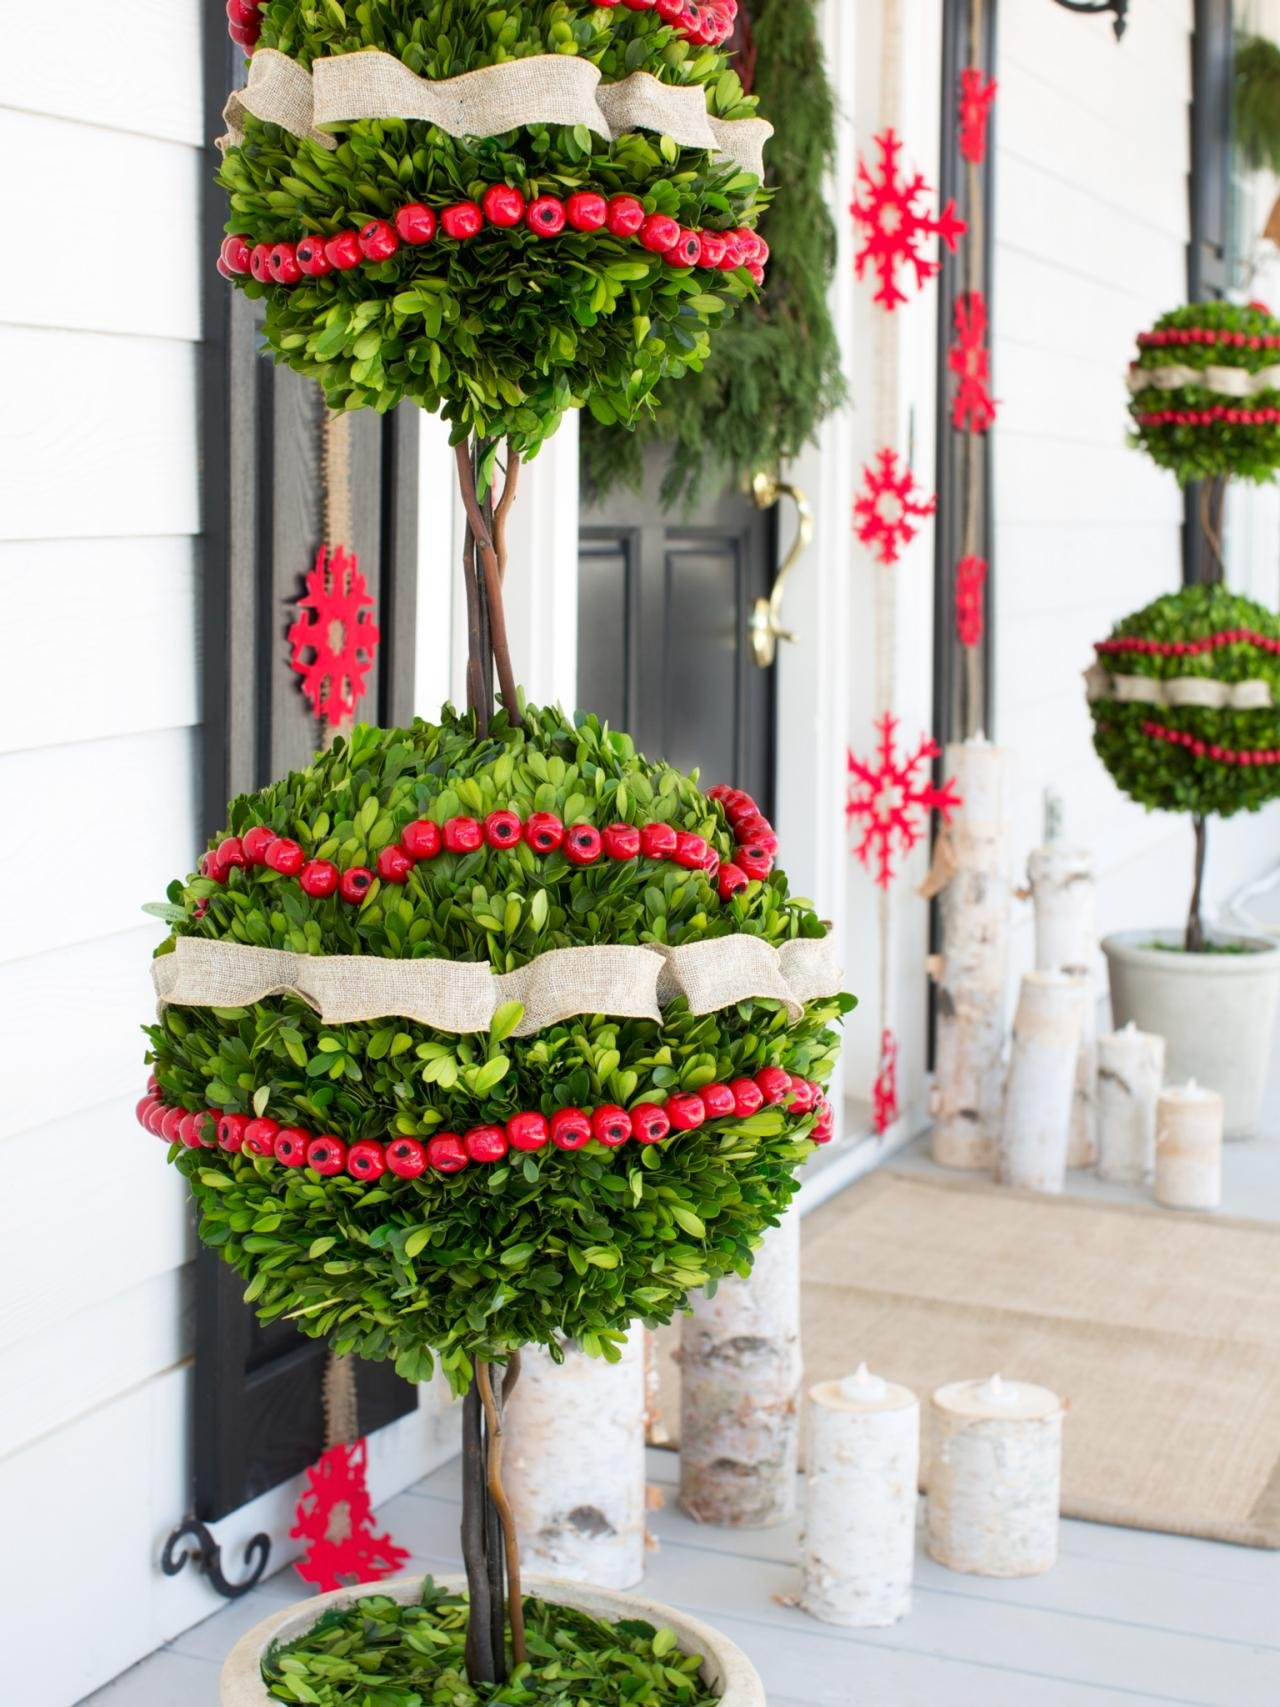 decorations-front-porch-designs-inspiring-ideas-of-outdoor-porch-christmas-decorating-with-violet-color-snow-flake-shape-paper-cutting-craft-and-combine-unique-trees-also-red-berries-white-ribbons-